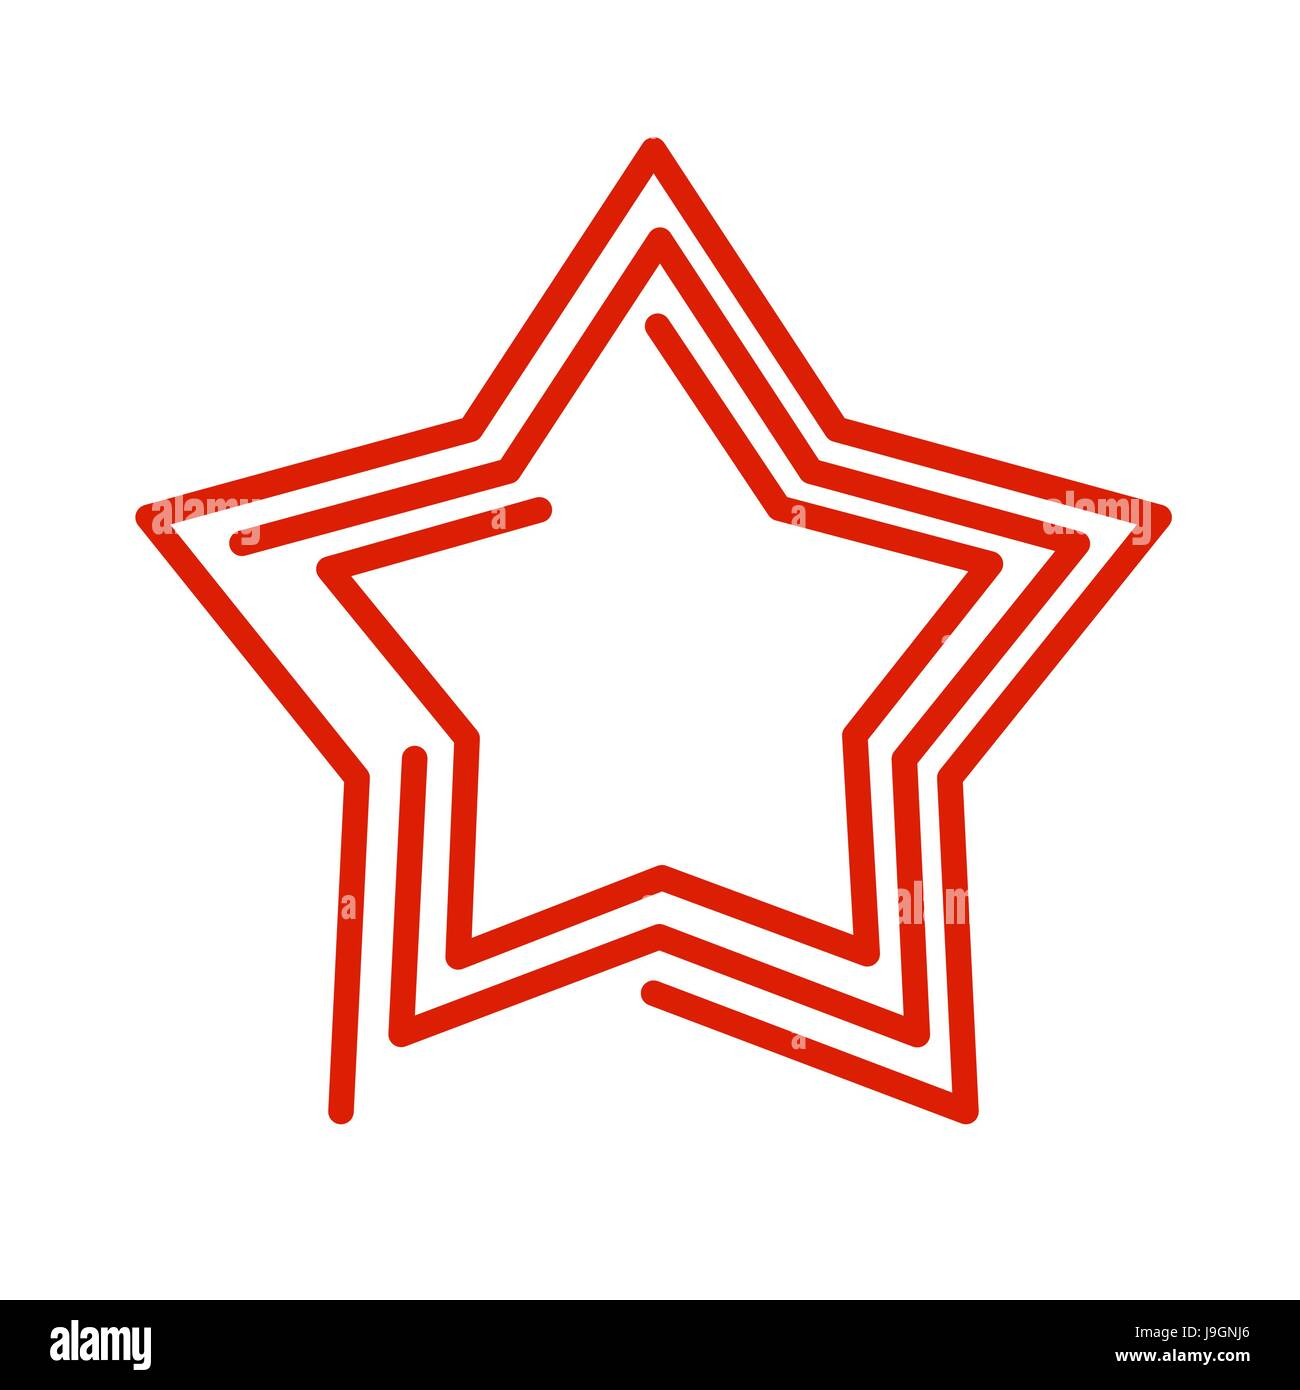 Star line style. Red Abstract sign on white background - Stock Image